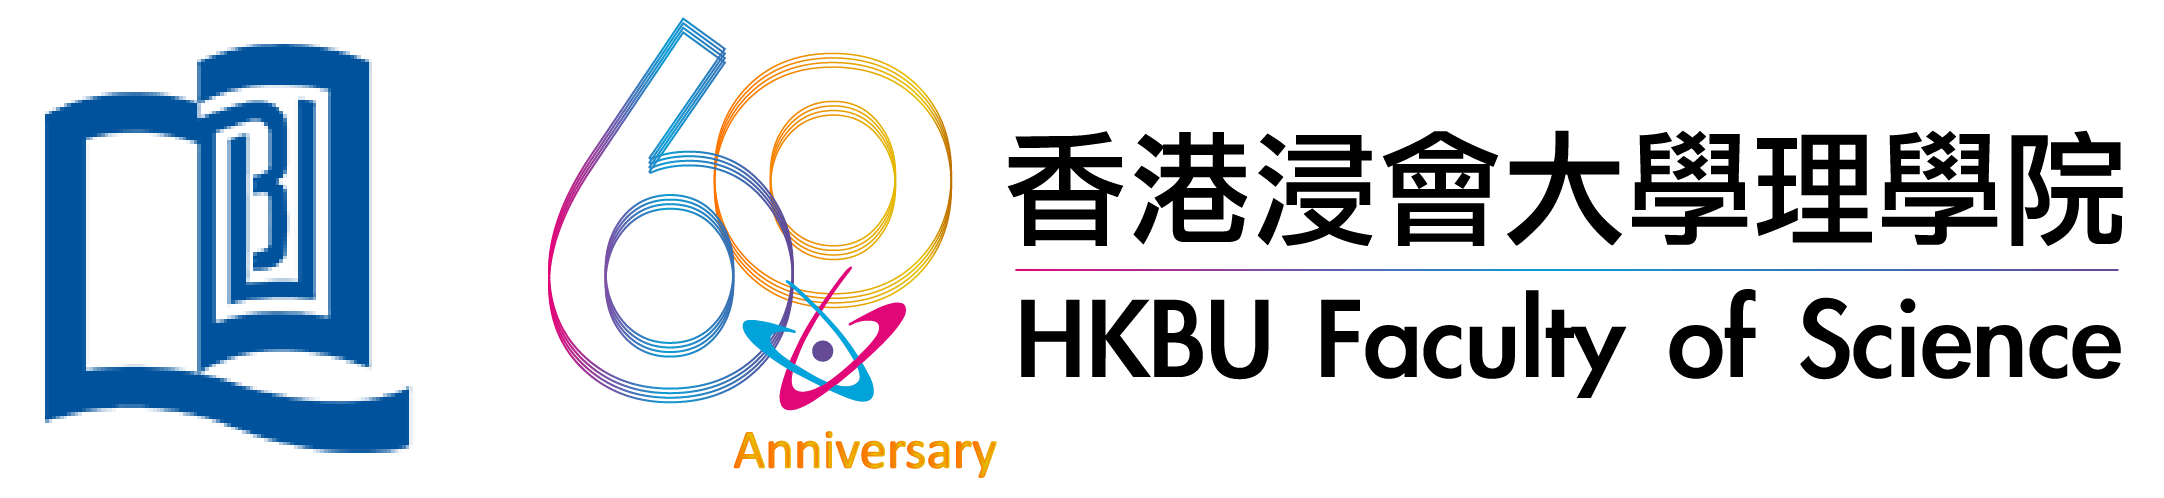 HKBU Faculty of Science 60th Anniversary